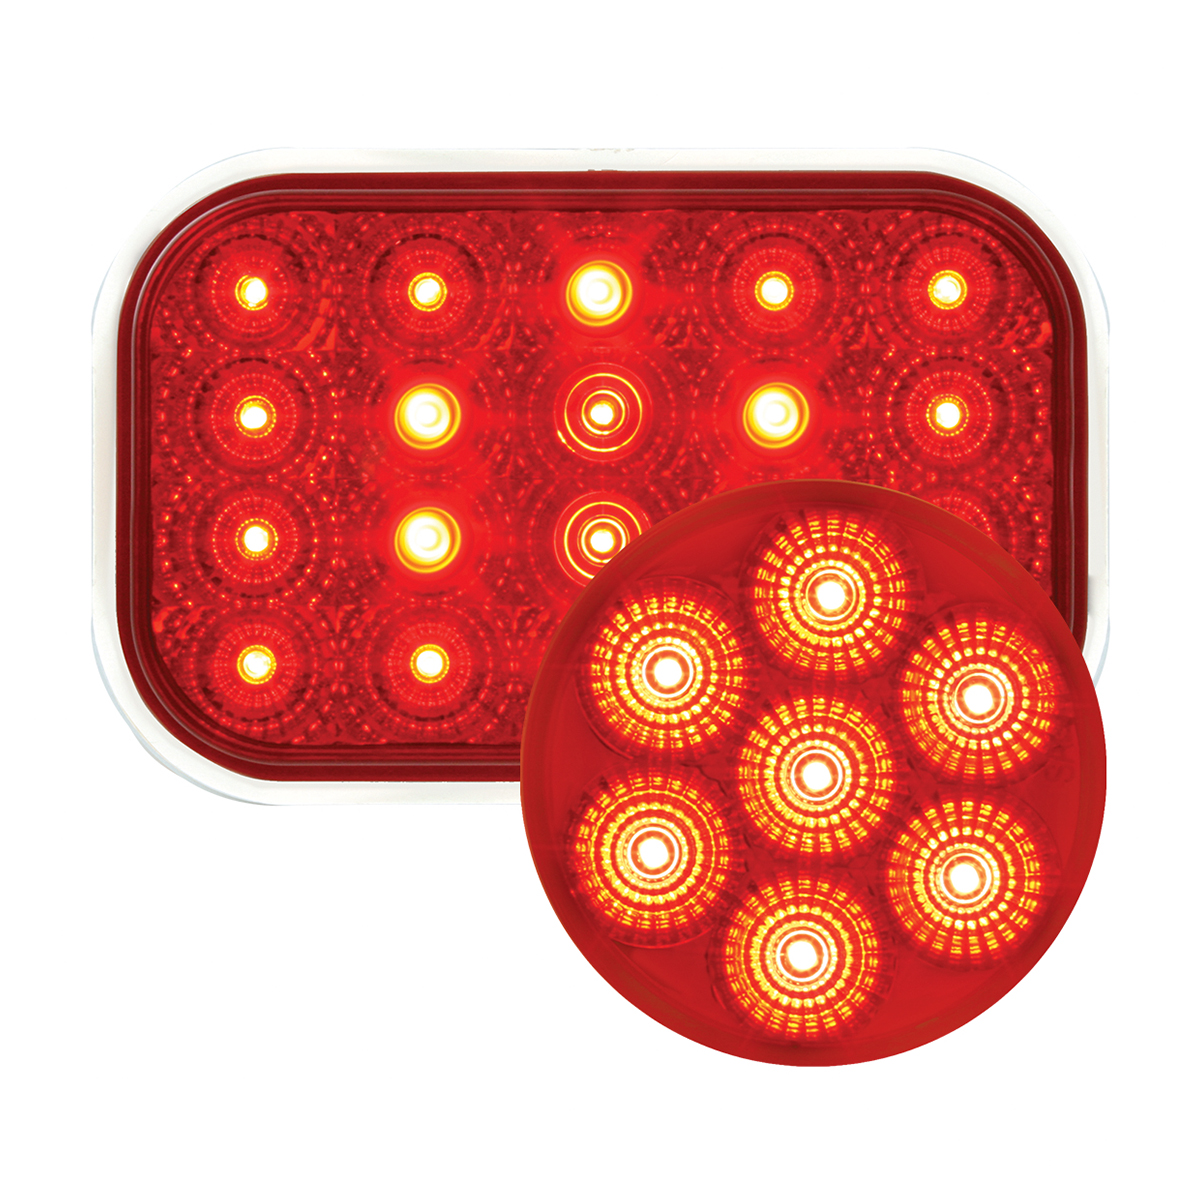 #77013/#76622 Spyder LED Flat Light - Red/Red